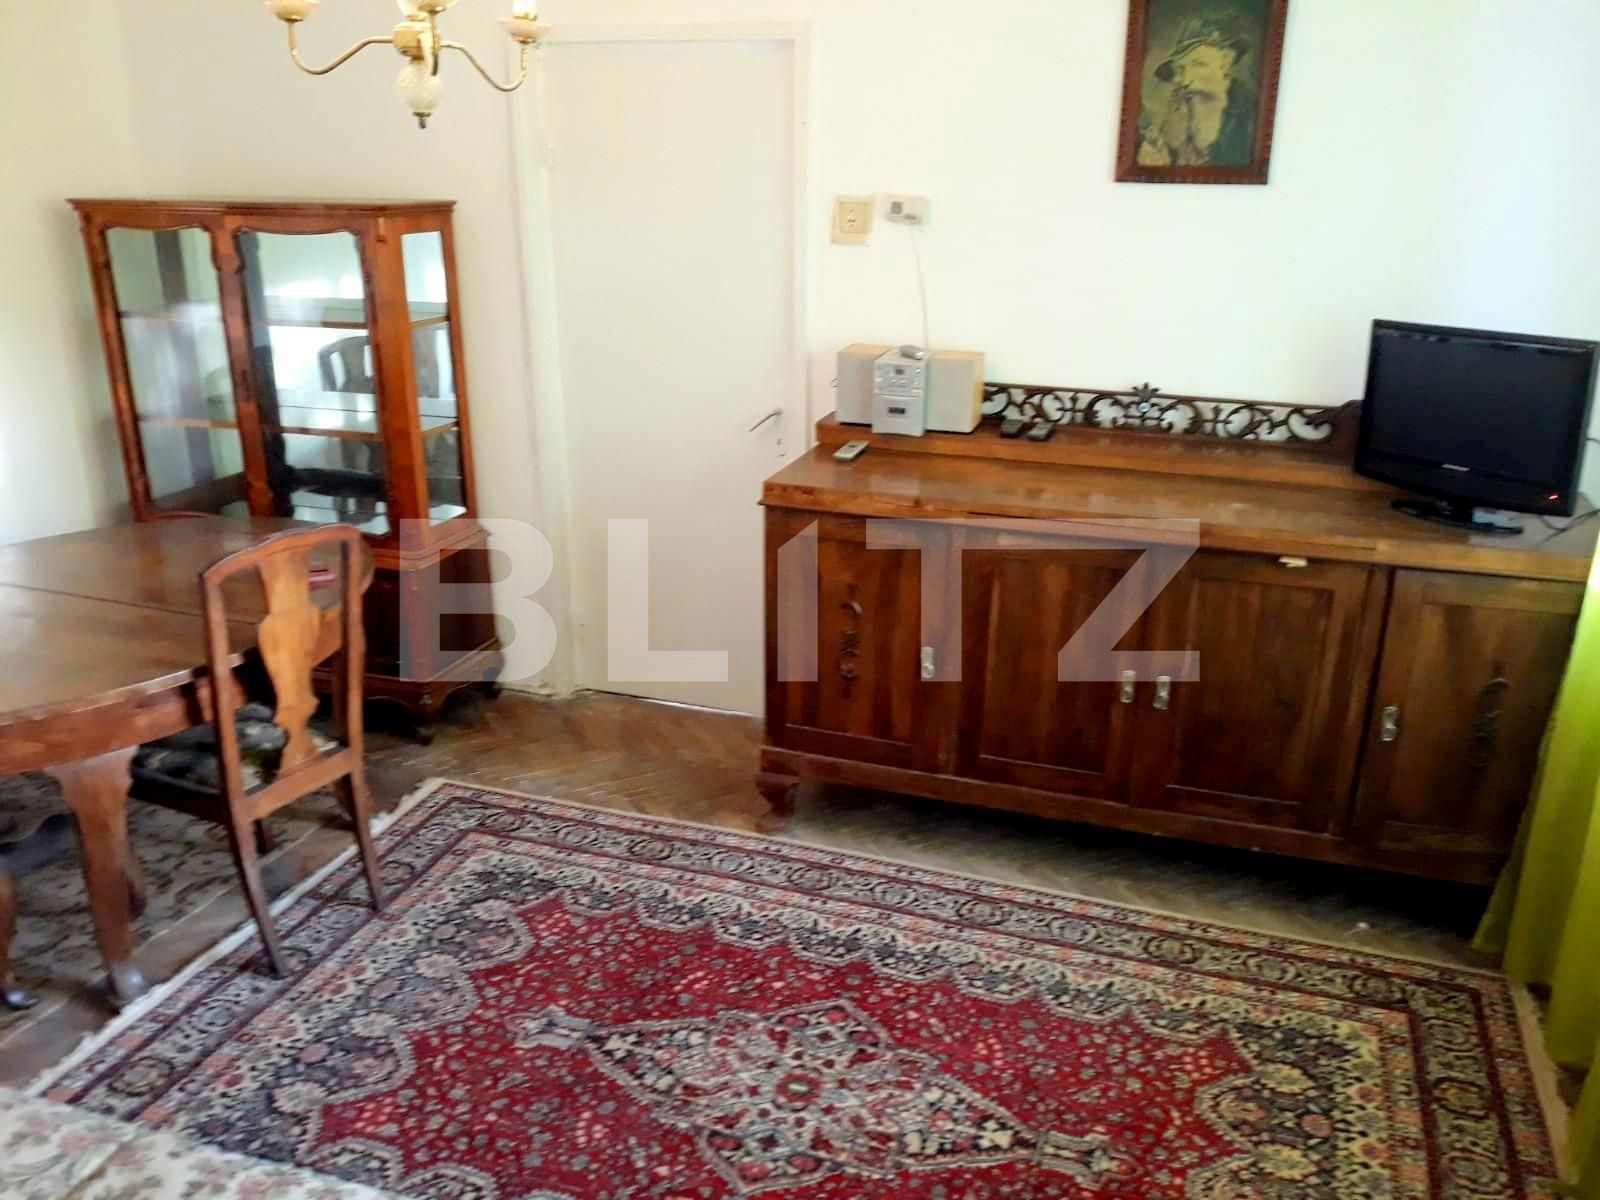 Apartament 3 camere, 77 mp, Pet Friendly, zona strazii Grigore Alexandrescu